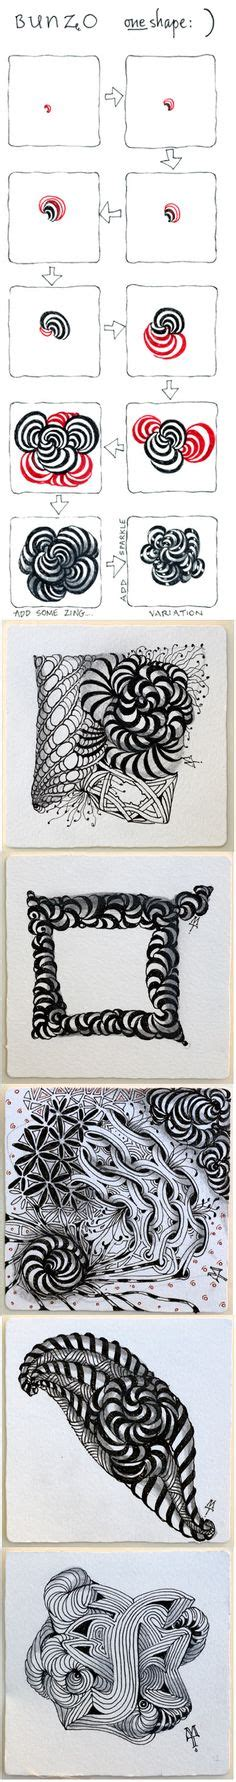 zentangle pattern isochor isochor tangle pattern official zentangle it s a